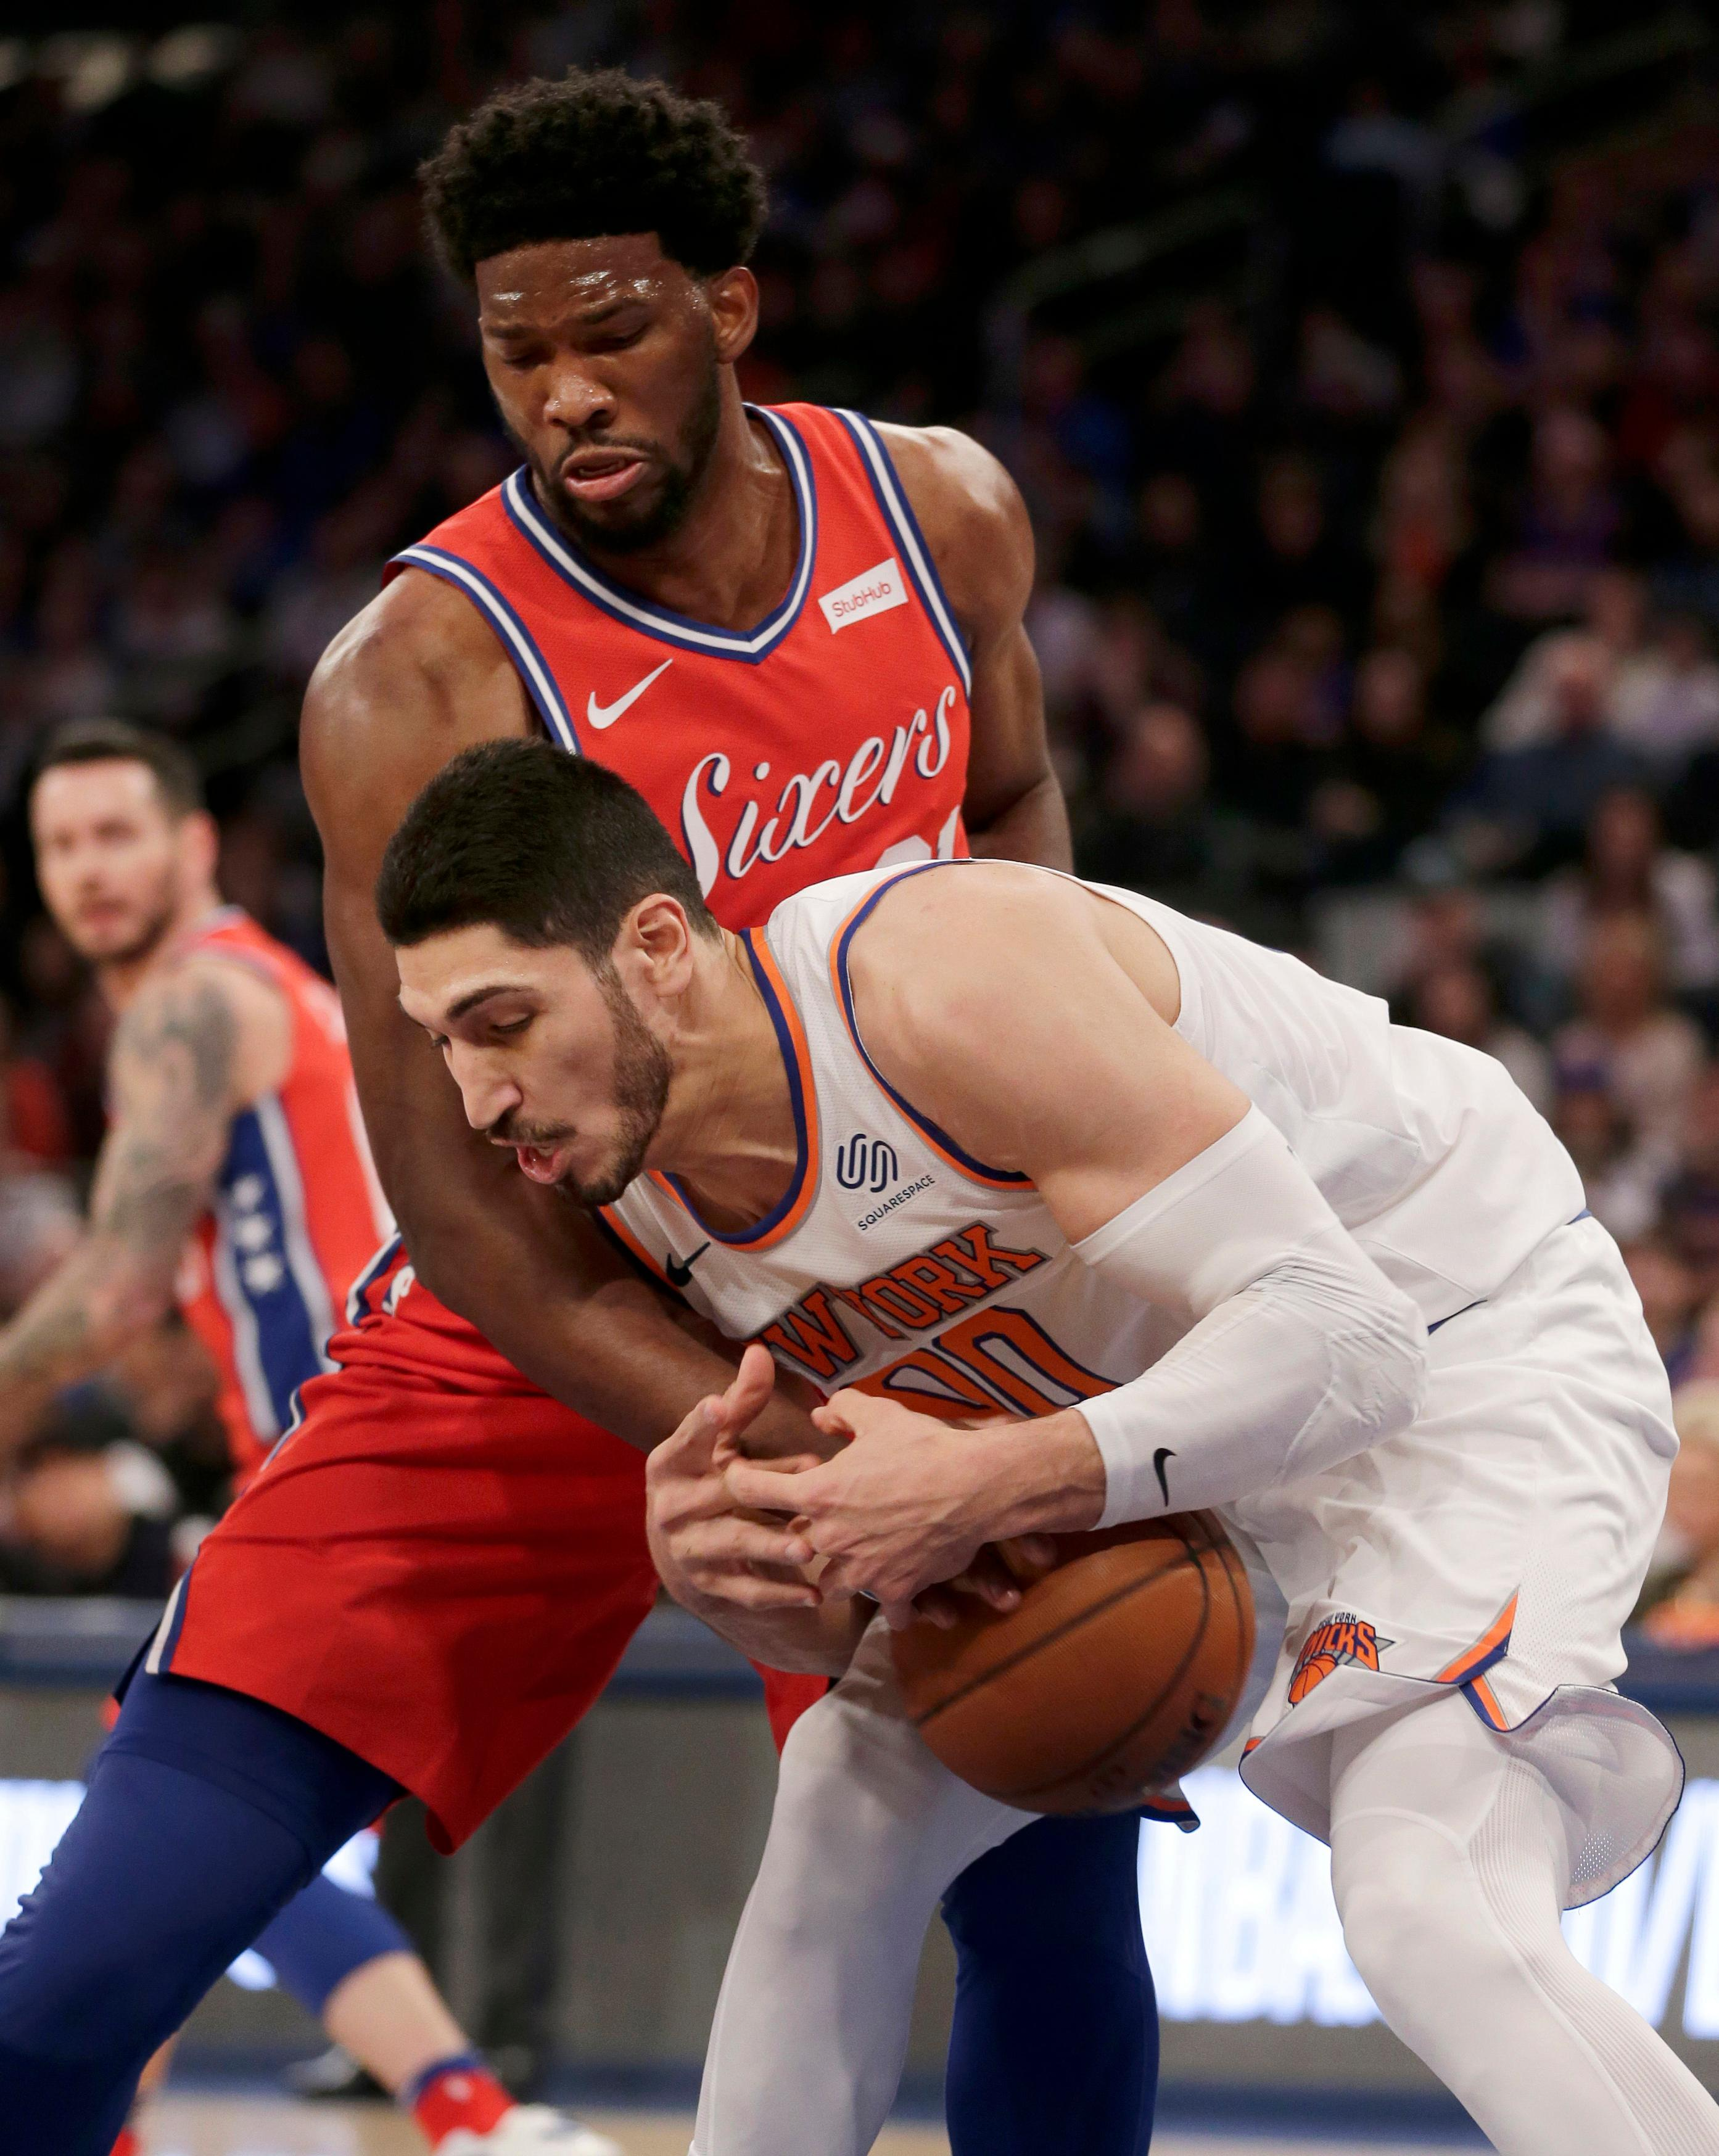 Philadelphia 76ers' Joel Embiid, top, and New York Knicks' Enes Kanter fight for a loose ball during the first half of the NBA basketball game, Monday, Dec. 25, 2017, in New York. (AP Photo/Seth Wenig)